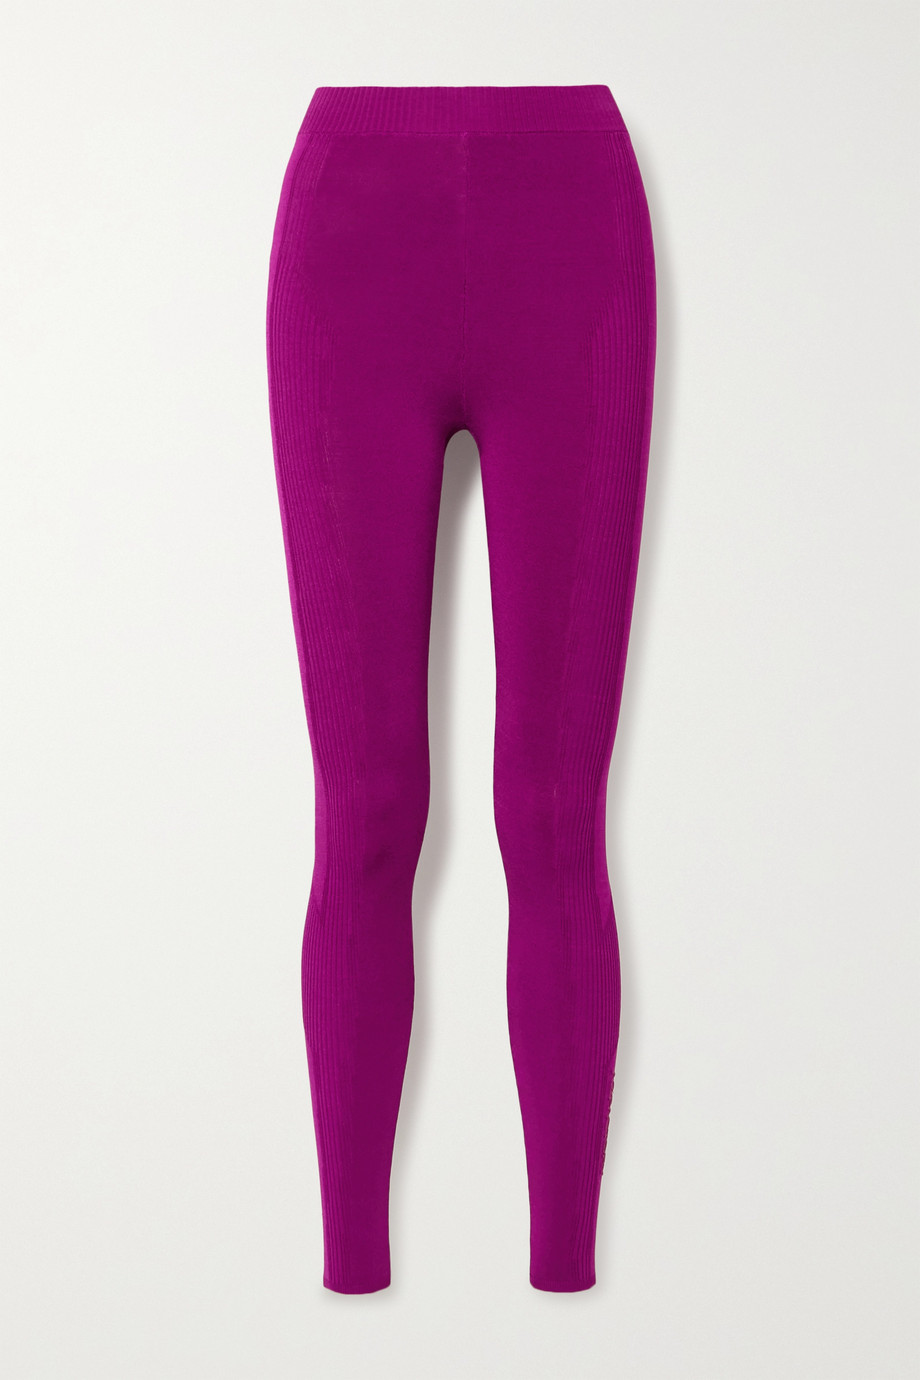 AZ FACTORY Switchwear stretch-knit leggings